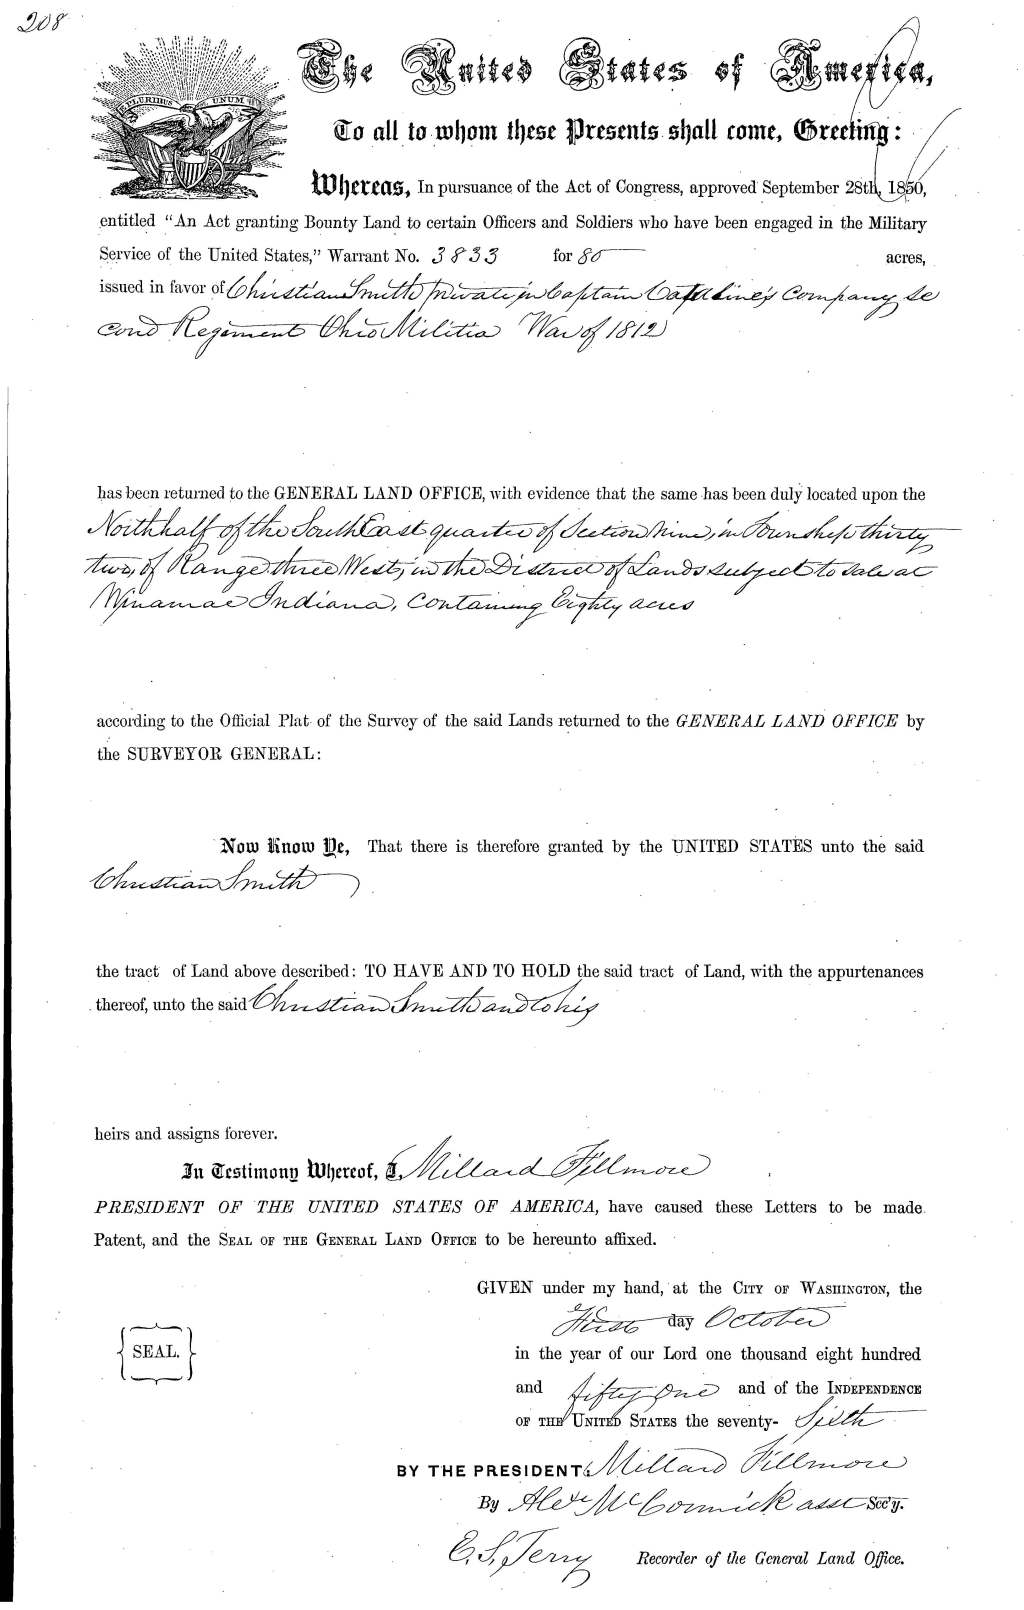 Chancery Record: Christian Smith military warrant 1 Oct 1851